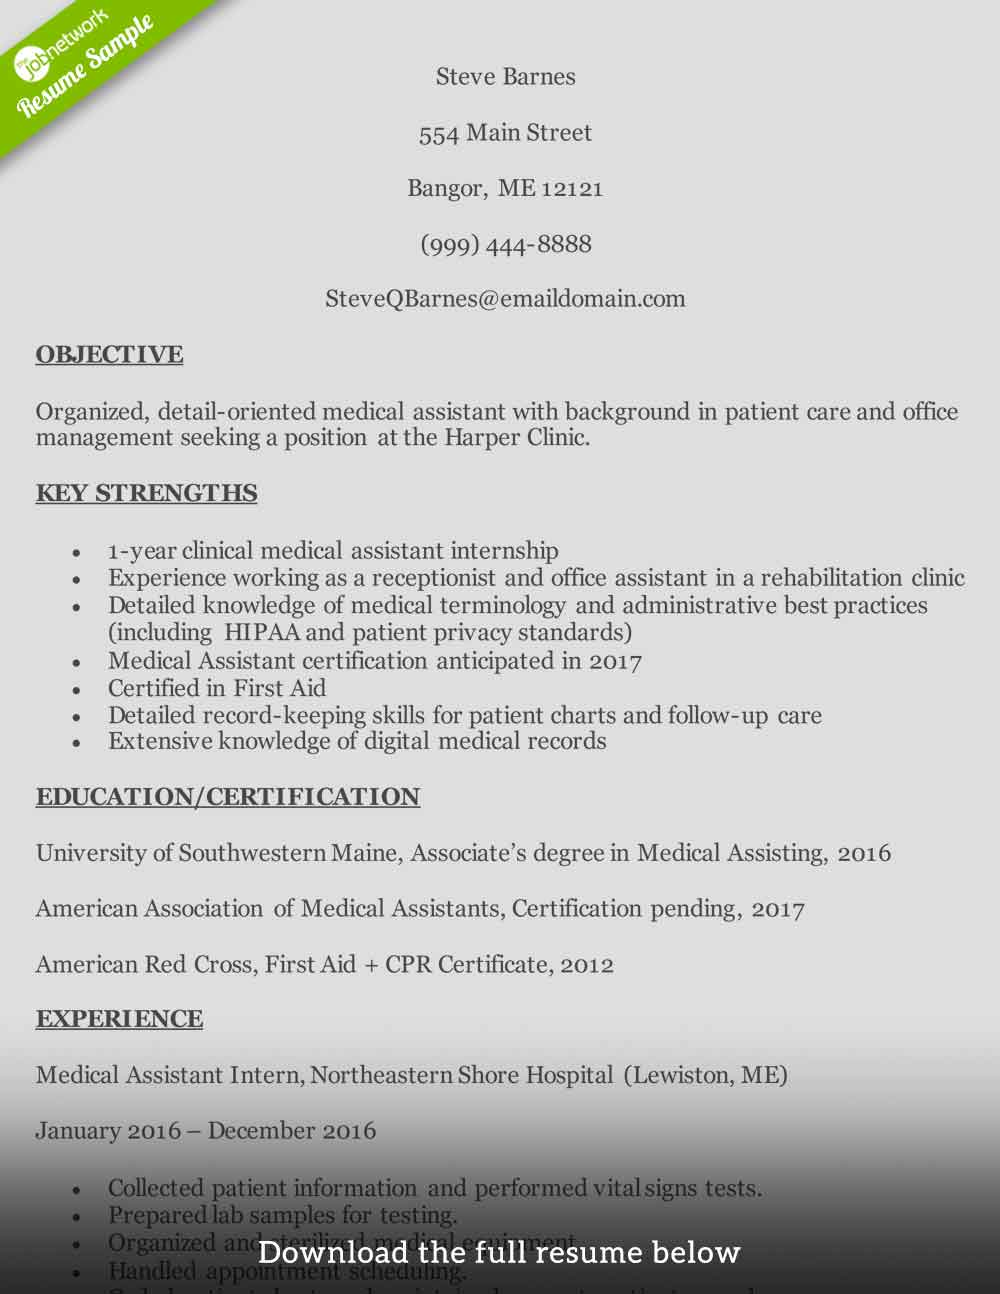 medican assistant resume entry level - Entry Level Medical Assistant Resume